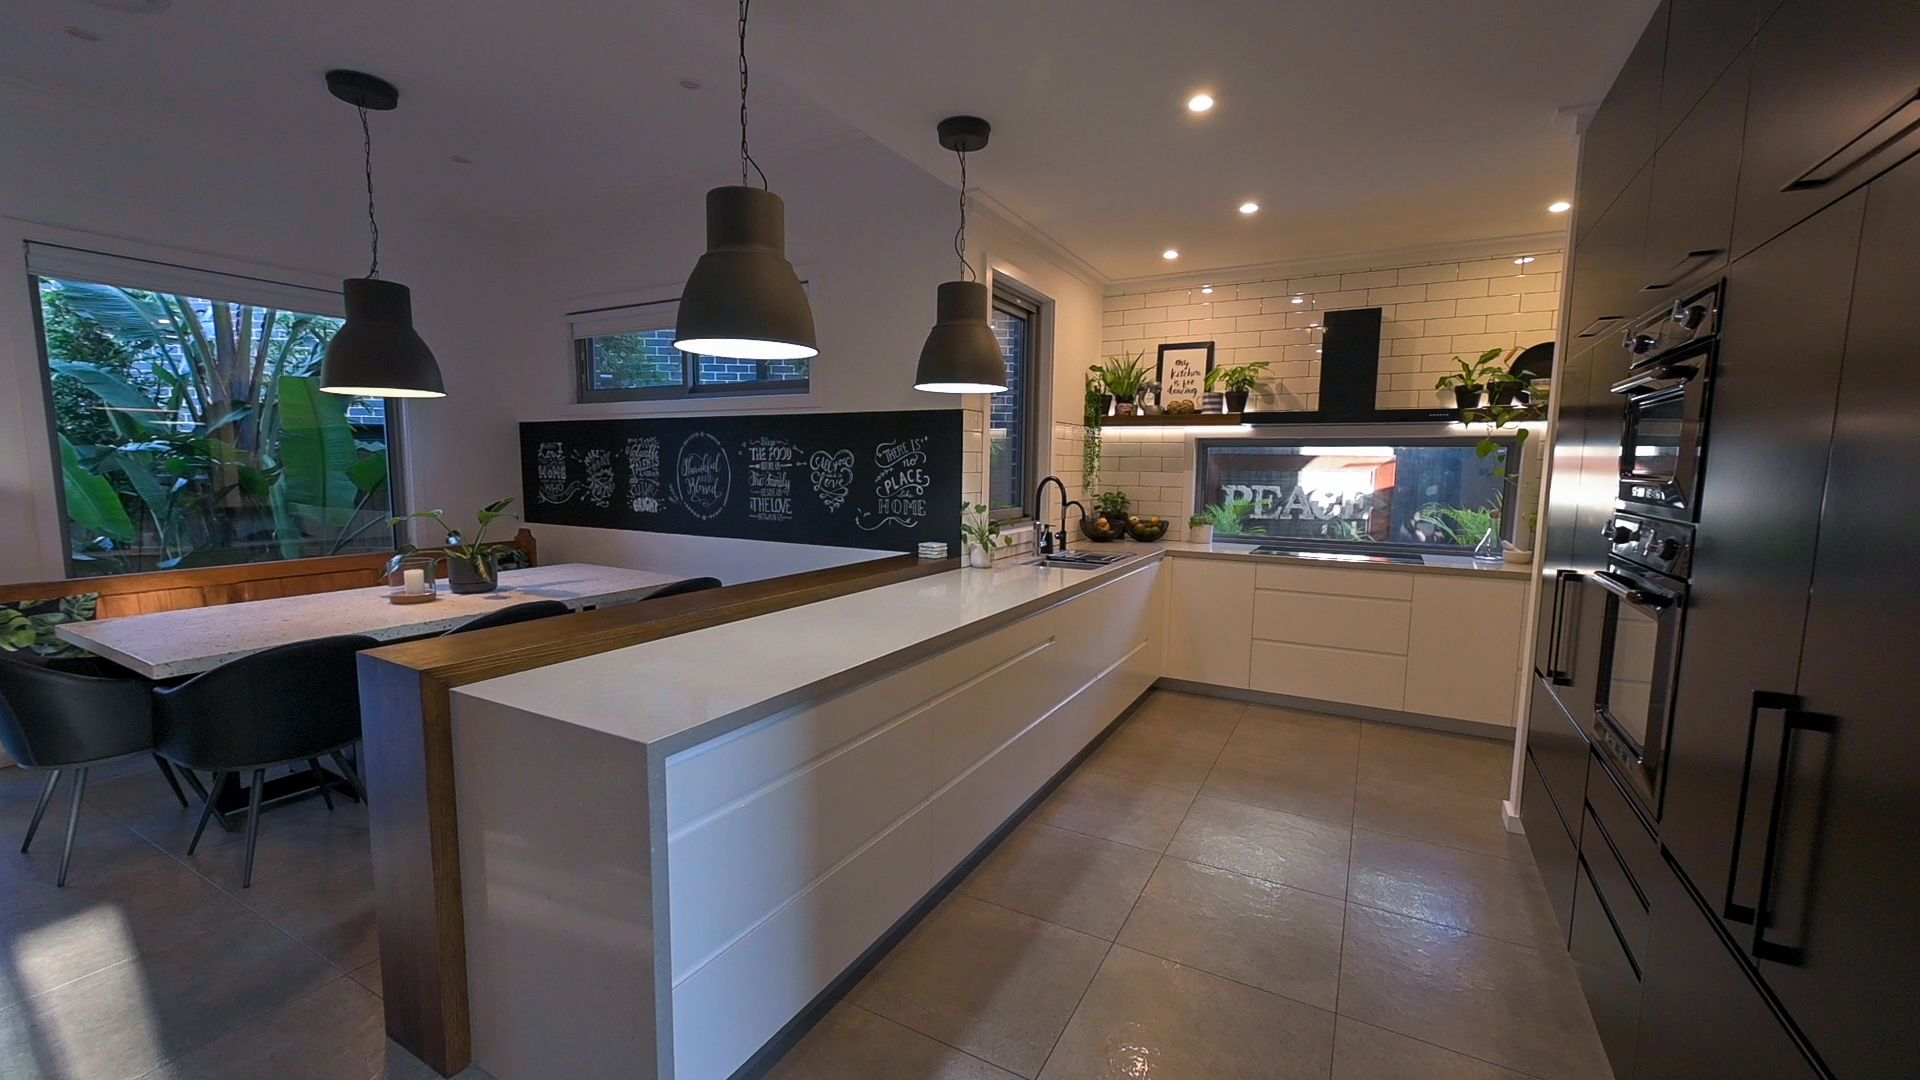 This modern black & white kitchen with a hidden butler's pantry has been designed with the home owners in mind - with teenage children and a love of entertaining.  #kitchen #modernkitchen #kitchenideas #kitcheninspiration #kitchengoals #sydneyhome #sydneyhomes #kitchenbuild #kitchendesign #newbuild #renovation #duplexkitchen